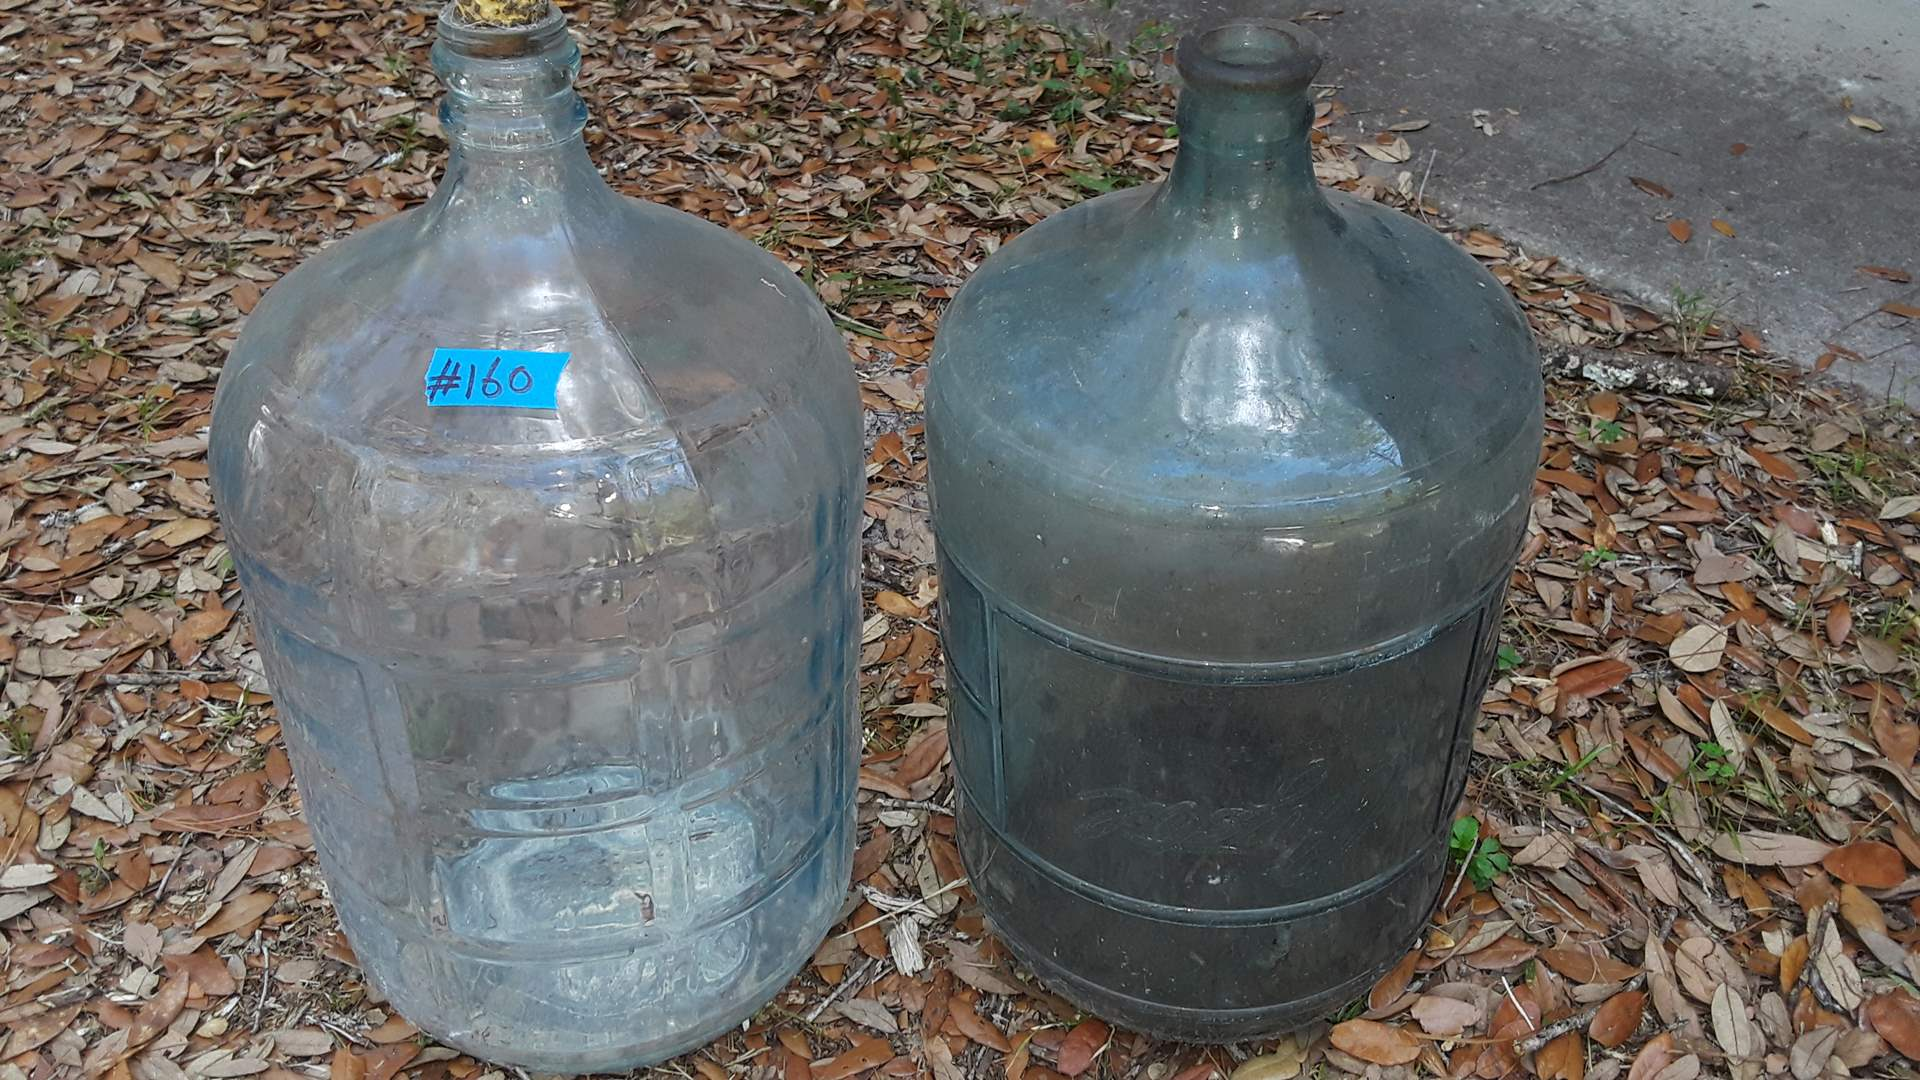 Lot # 160 - 2 FULL SIZE WATER BOTTLES, CRYSTAL SPRINGS WATER CO MIAMI FL, OTHER IS UNMARKED, GOOD CONDITION NEEDS CLEANING